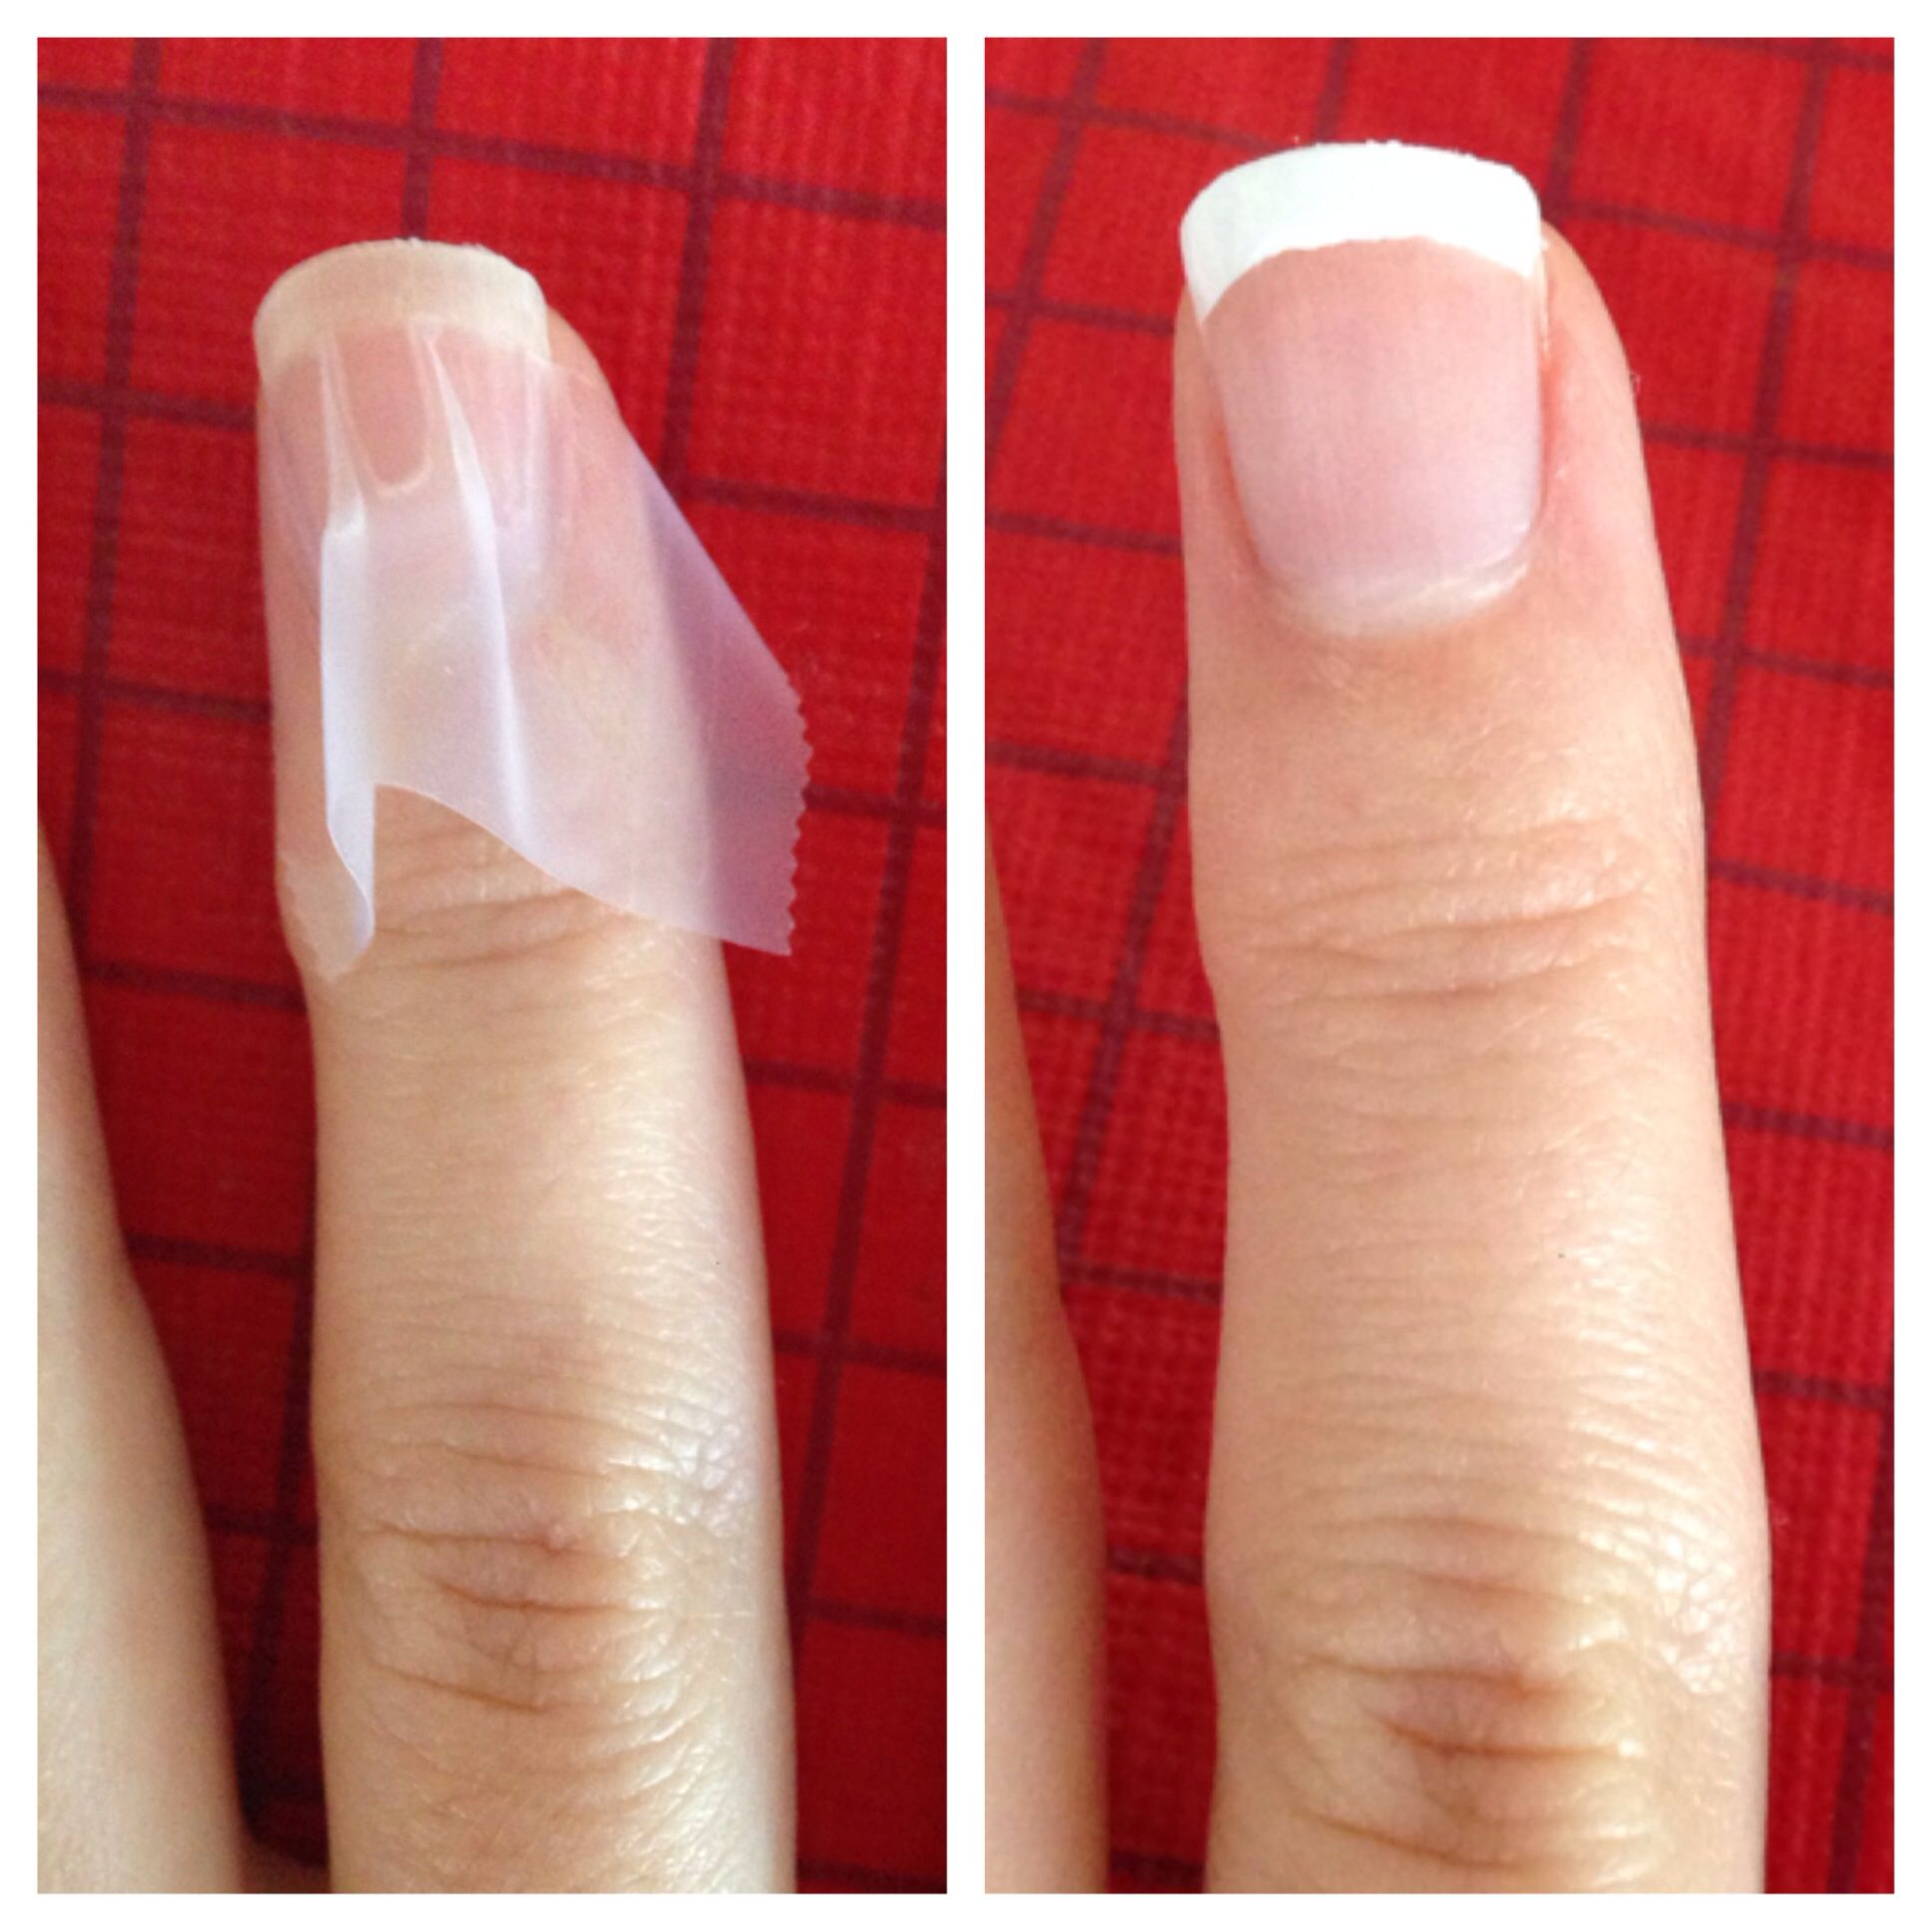 East DIY French Manicure! Line your nail with tape in the shape you ...